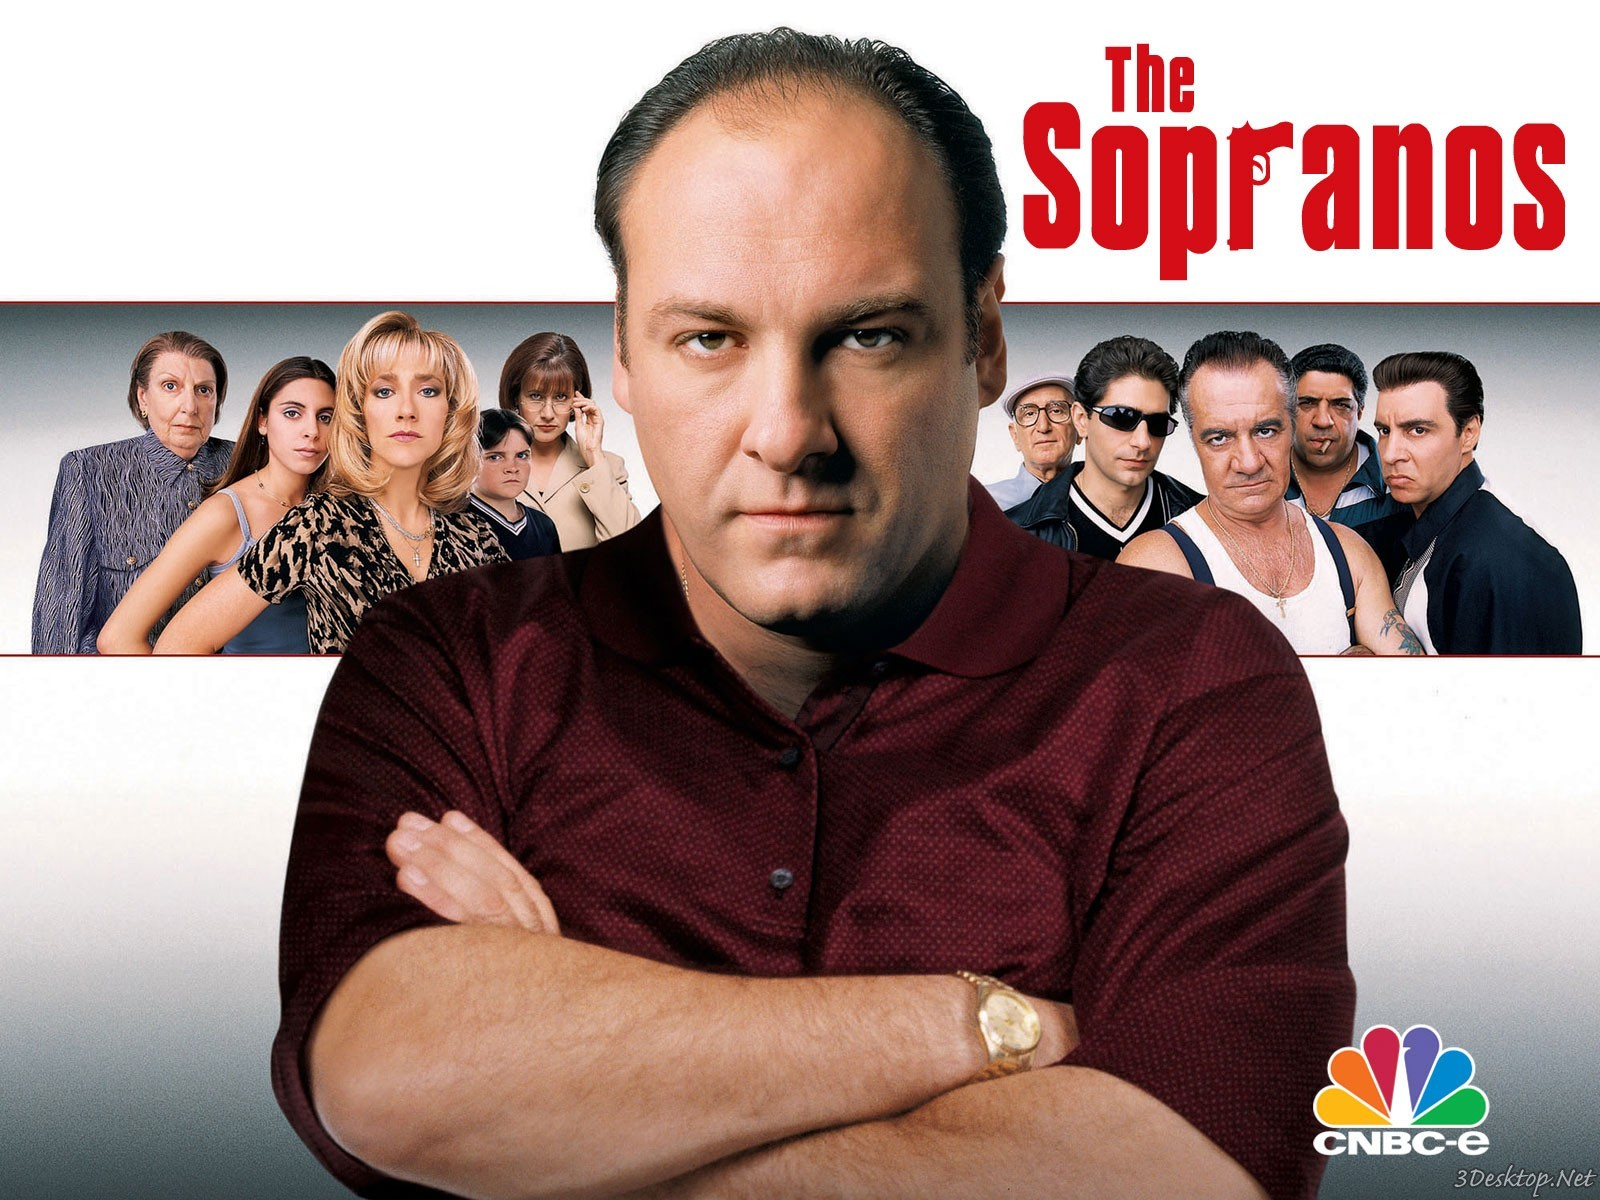 The Sopranos At Cnbc